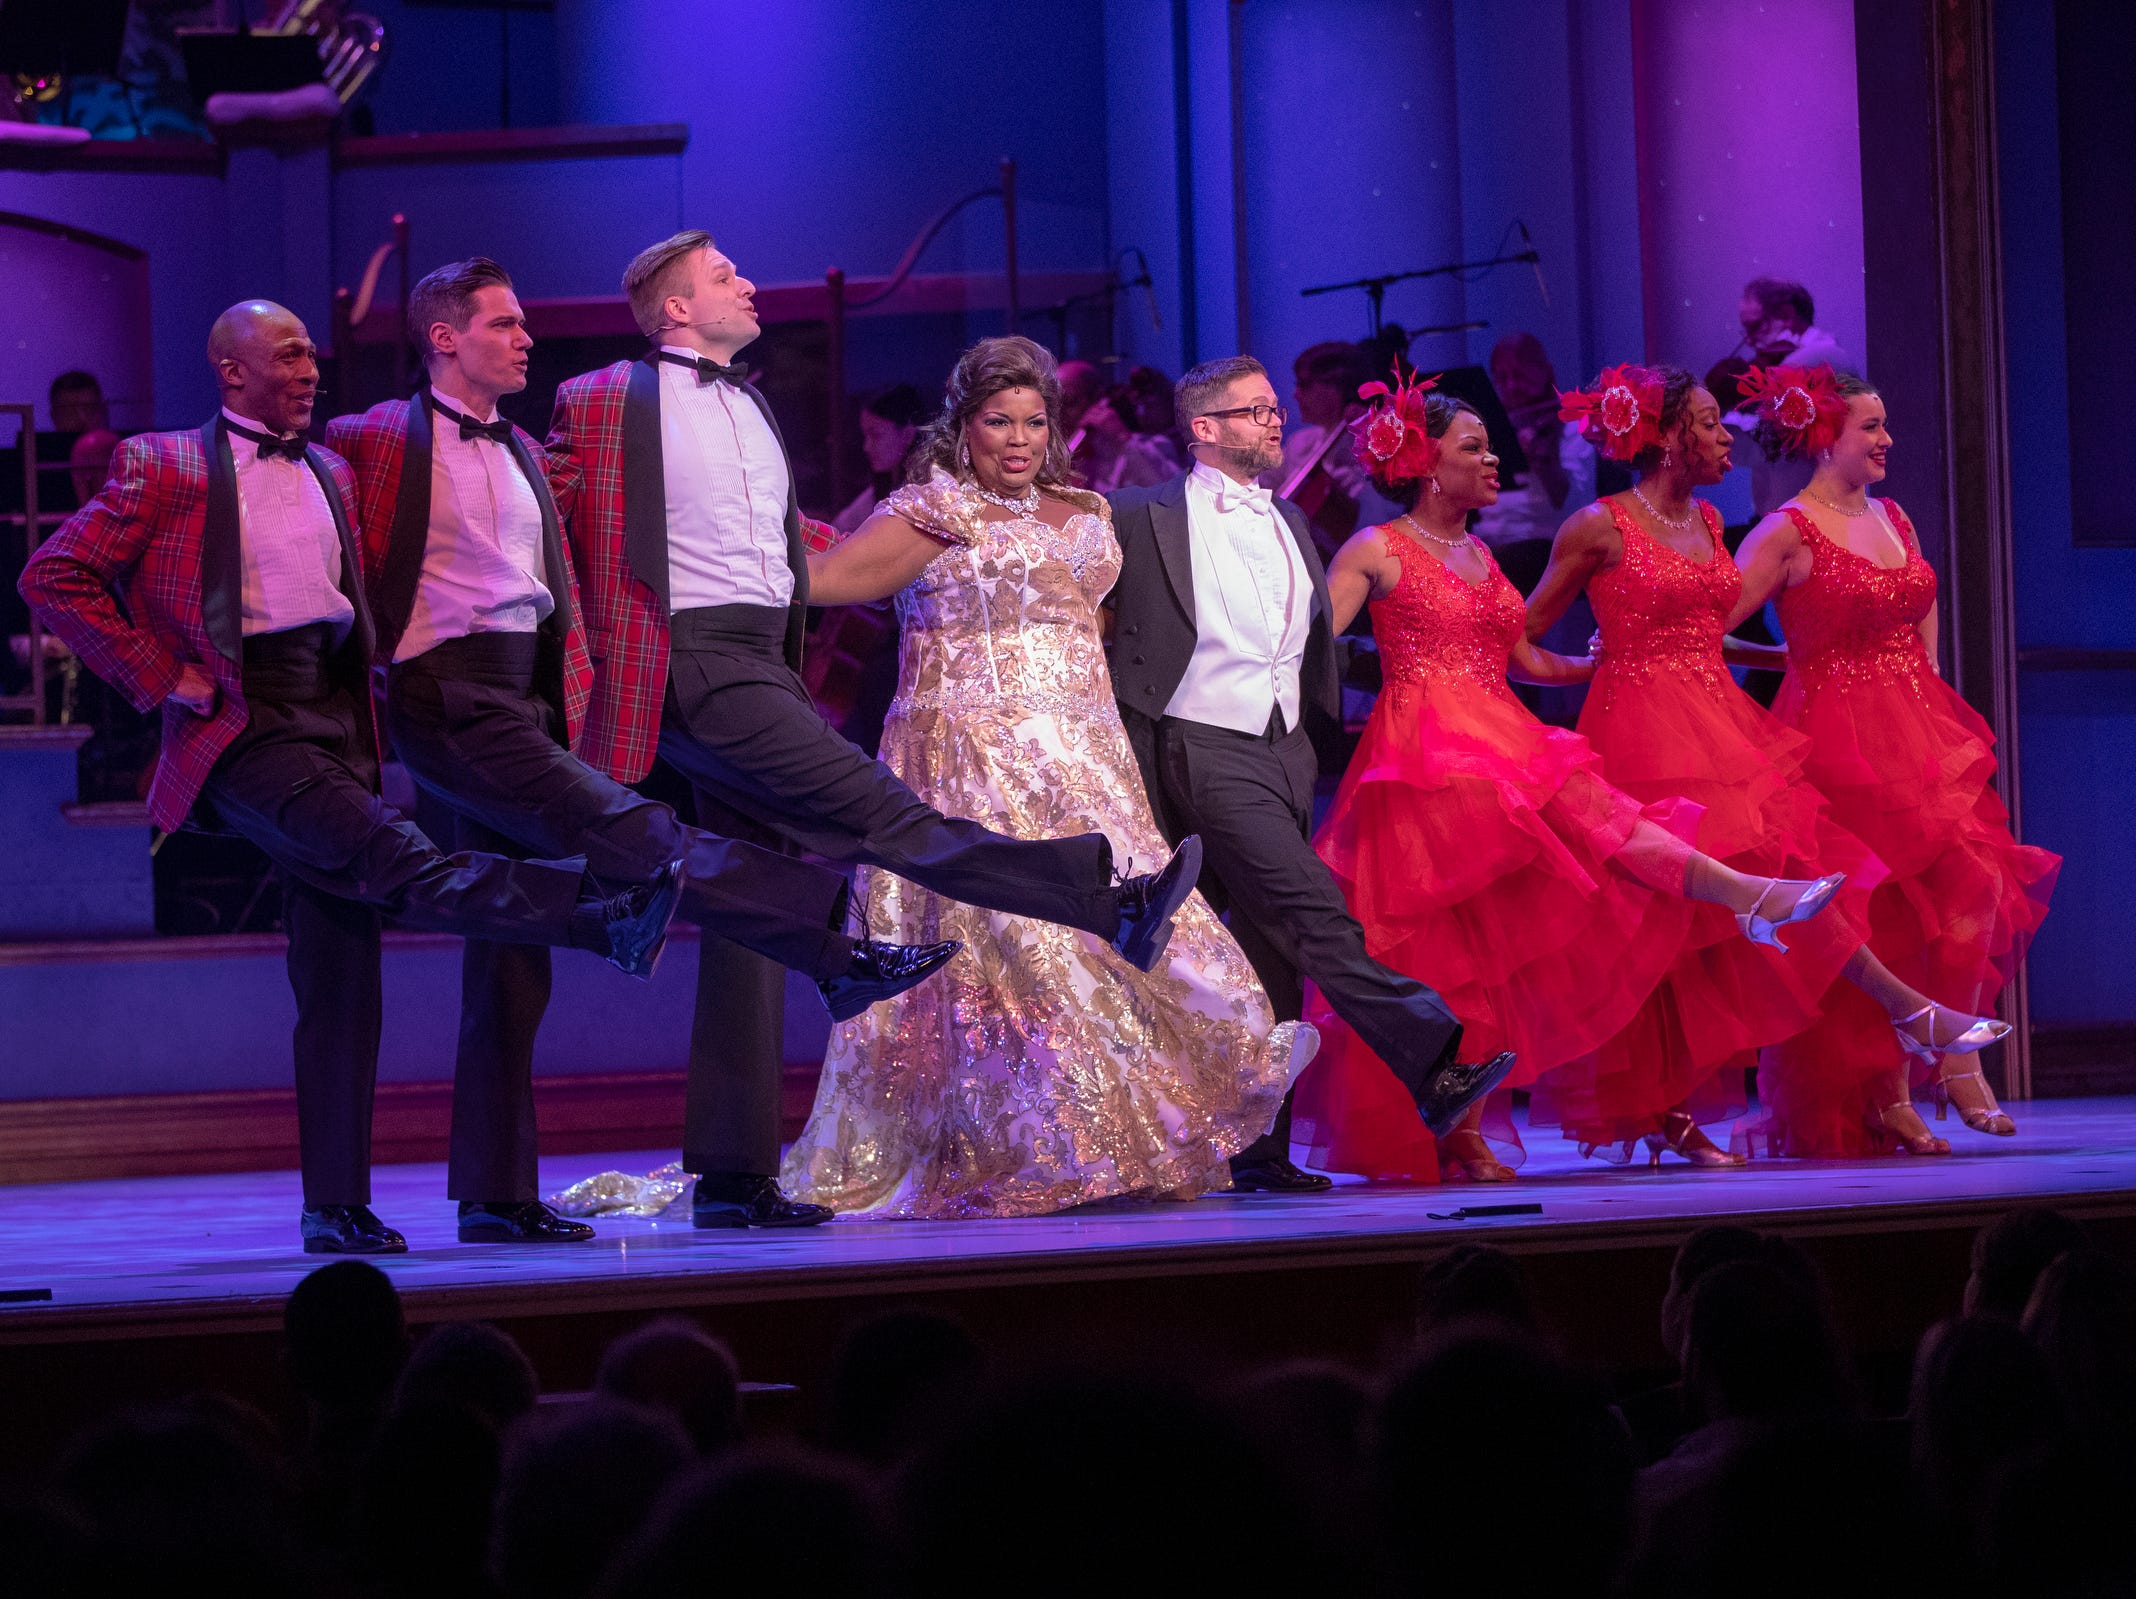 Angela Brown and Josh Kaufman lead a number at Yuletide Celebration, showcasing the Indianapolis Symphony Orchestra, at Hilbert Circle Theater, Indianapolis, Sunday. Dec. 23, 2018. The extravaganza features dancing, holiday songs, and skits.